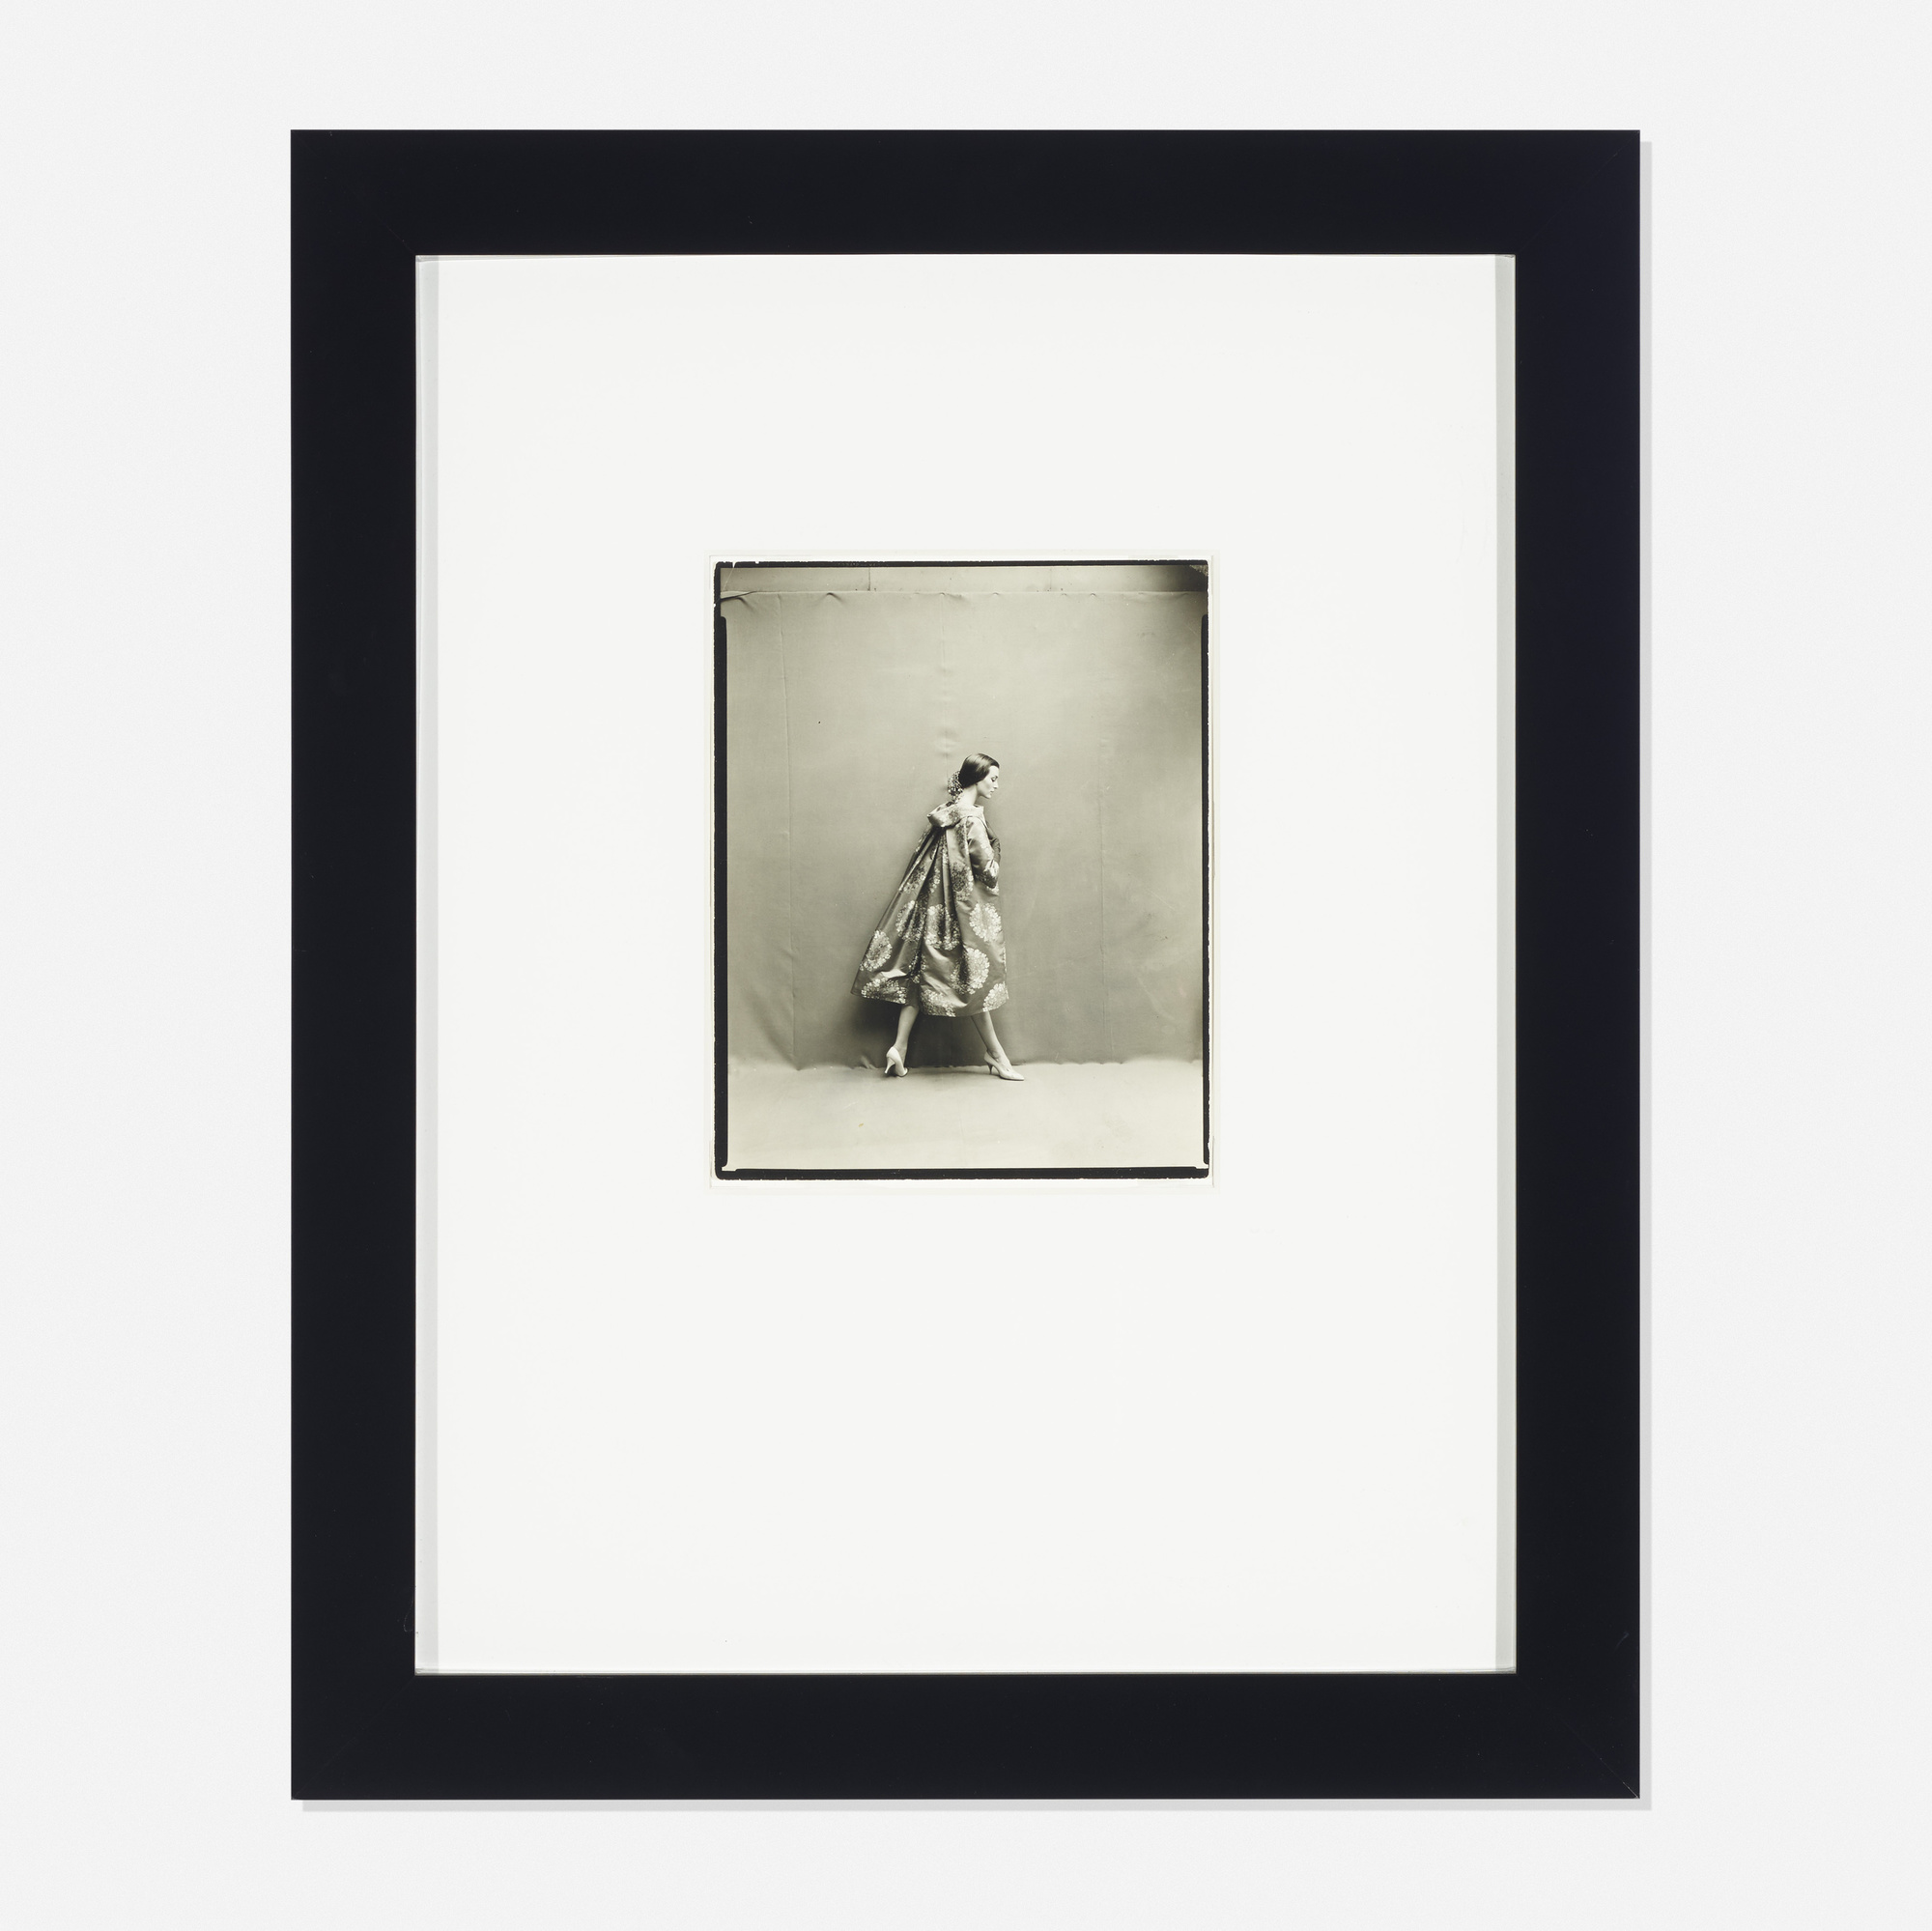 277: Richard Avedon / Untitled (Carmen) (1 of 2)